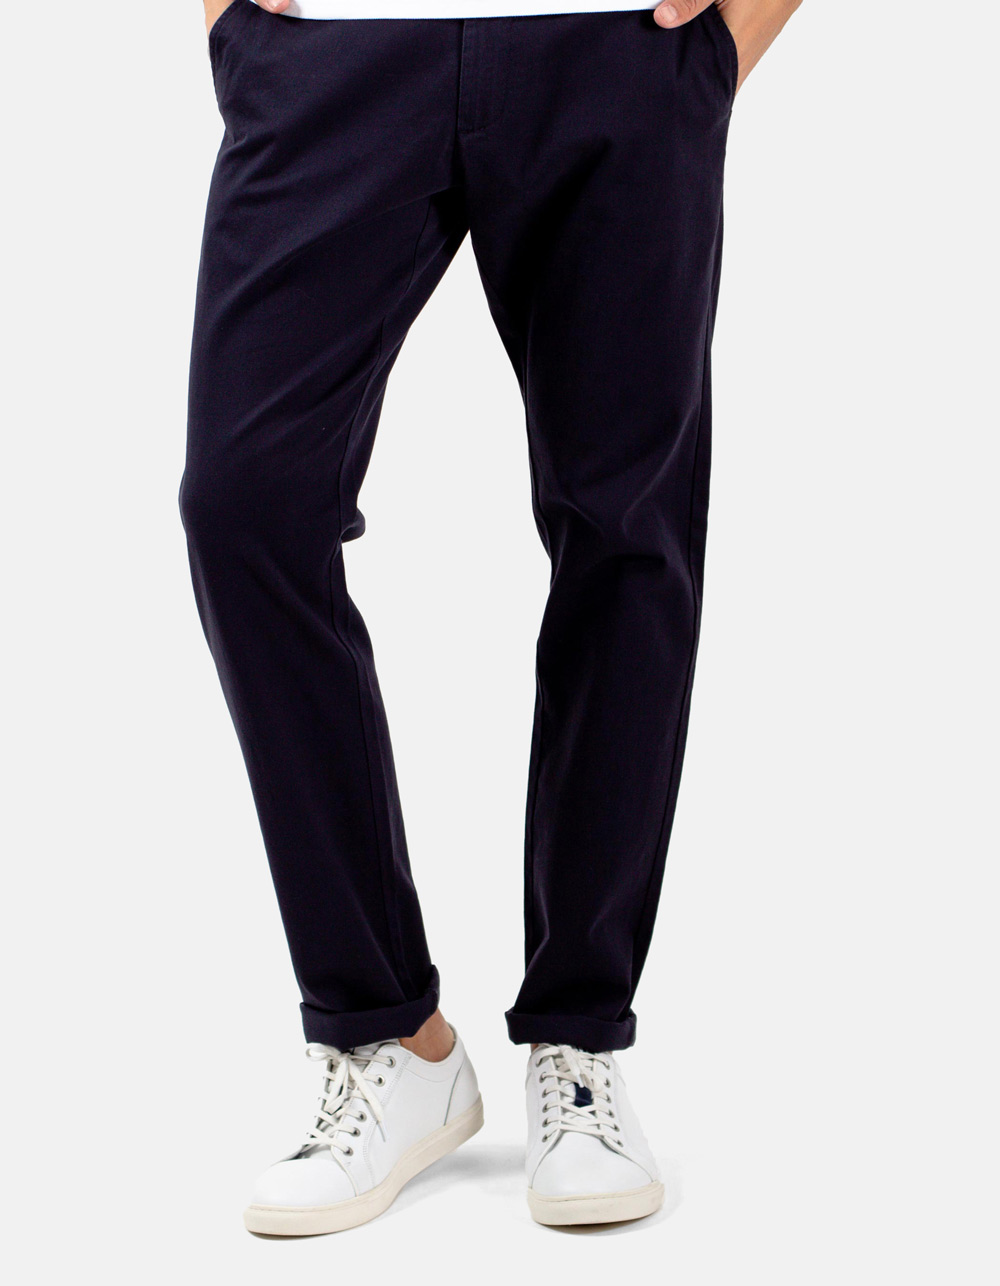 Basic chino dark navy trousers